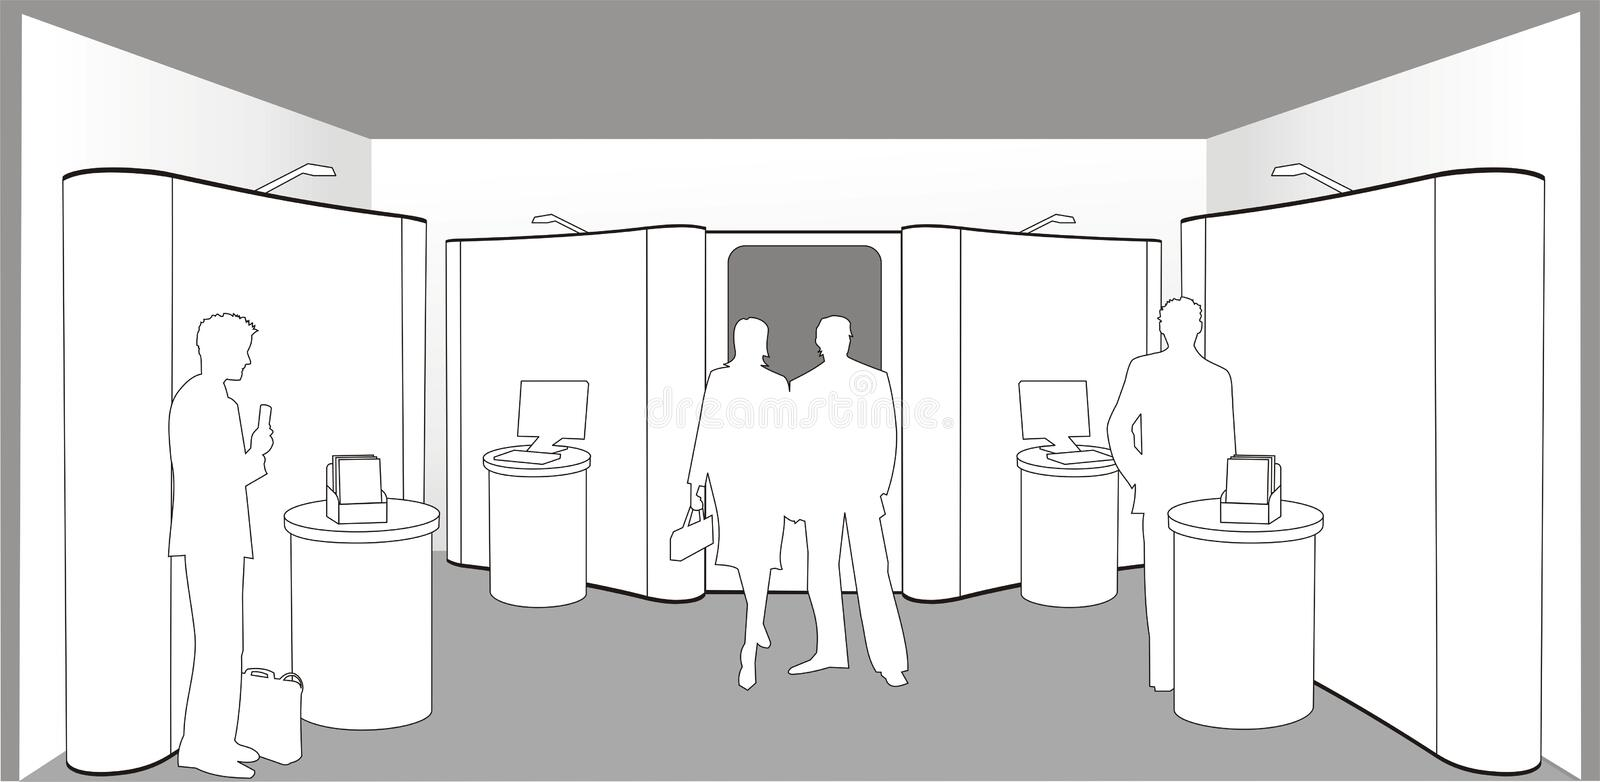 Buyers at an exhibition. Illustration of silhouettes of people looking at an exhibition stand with room for logos and copy stock illustration